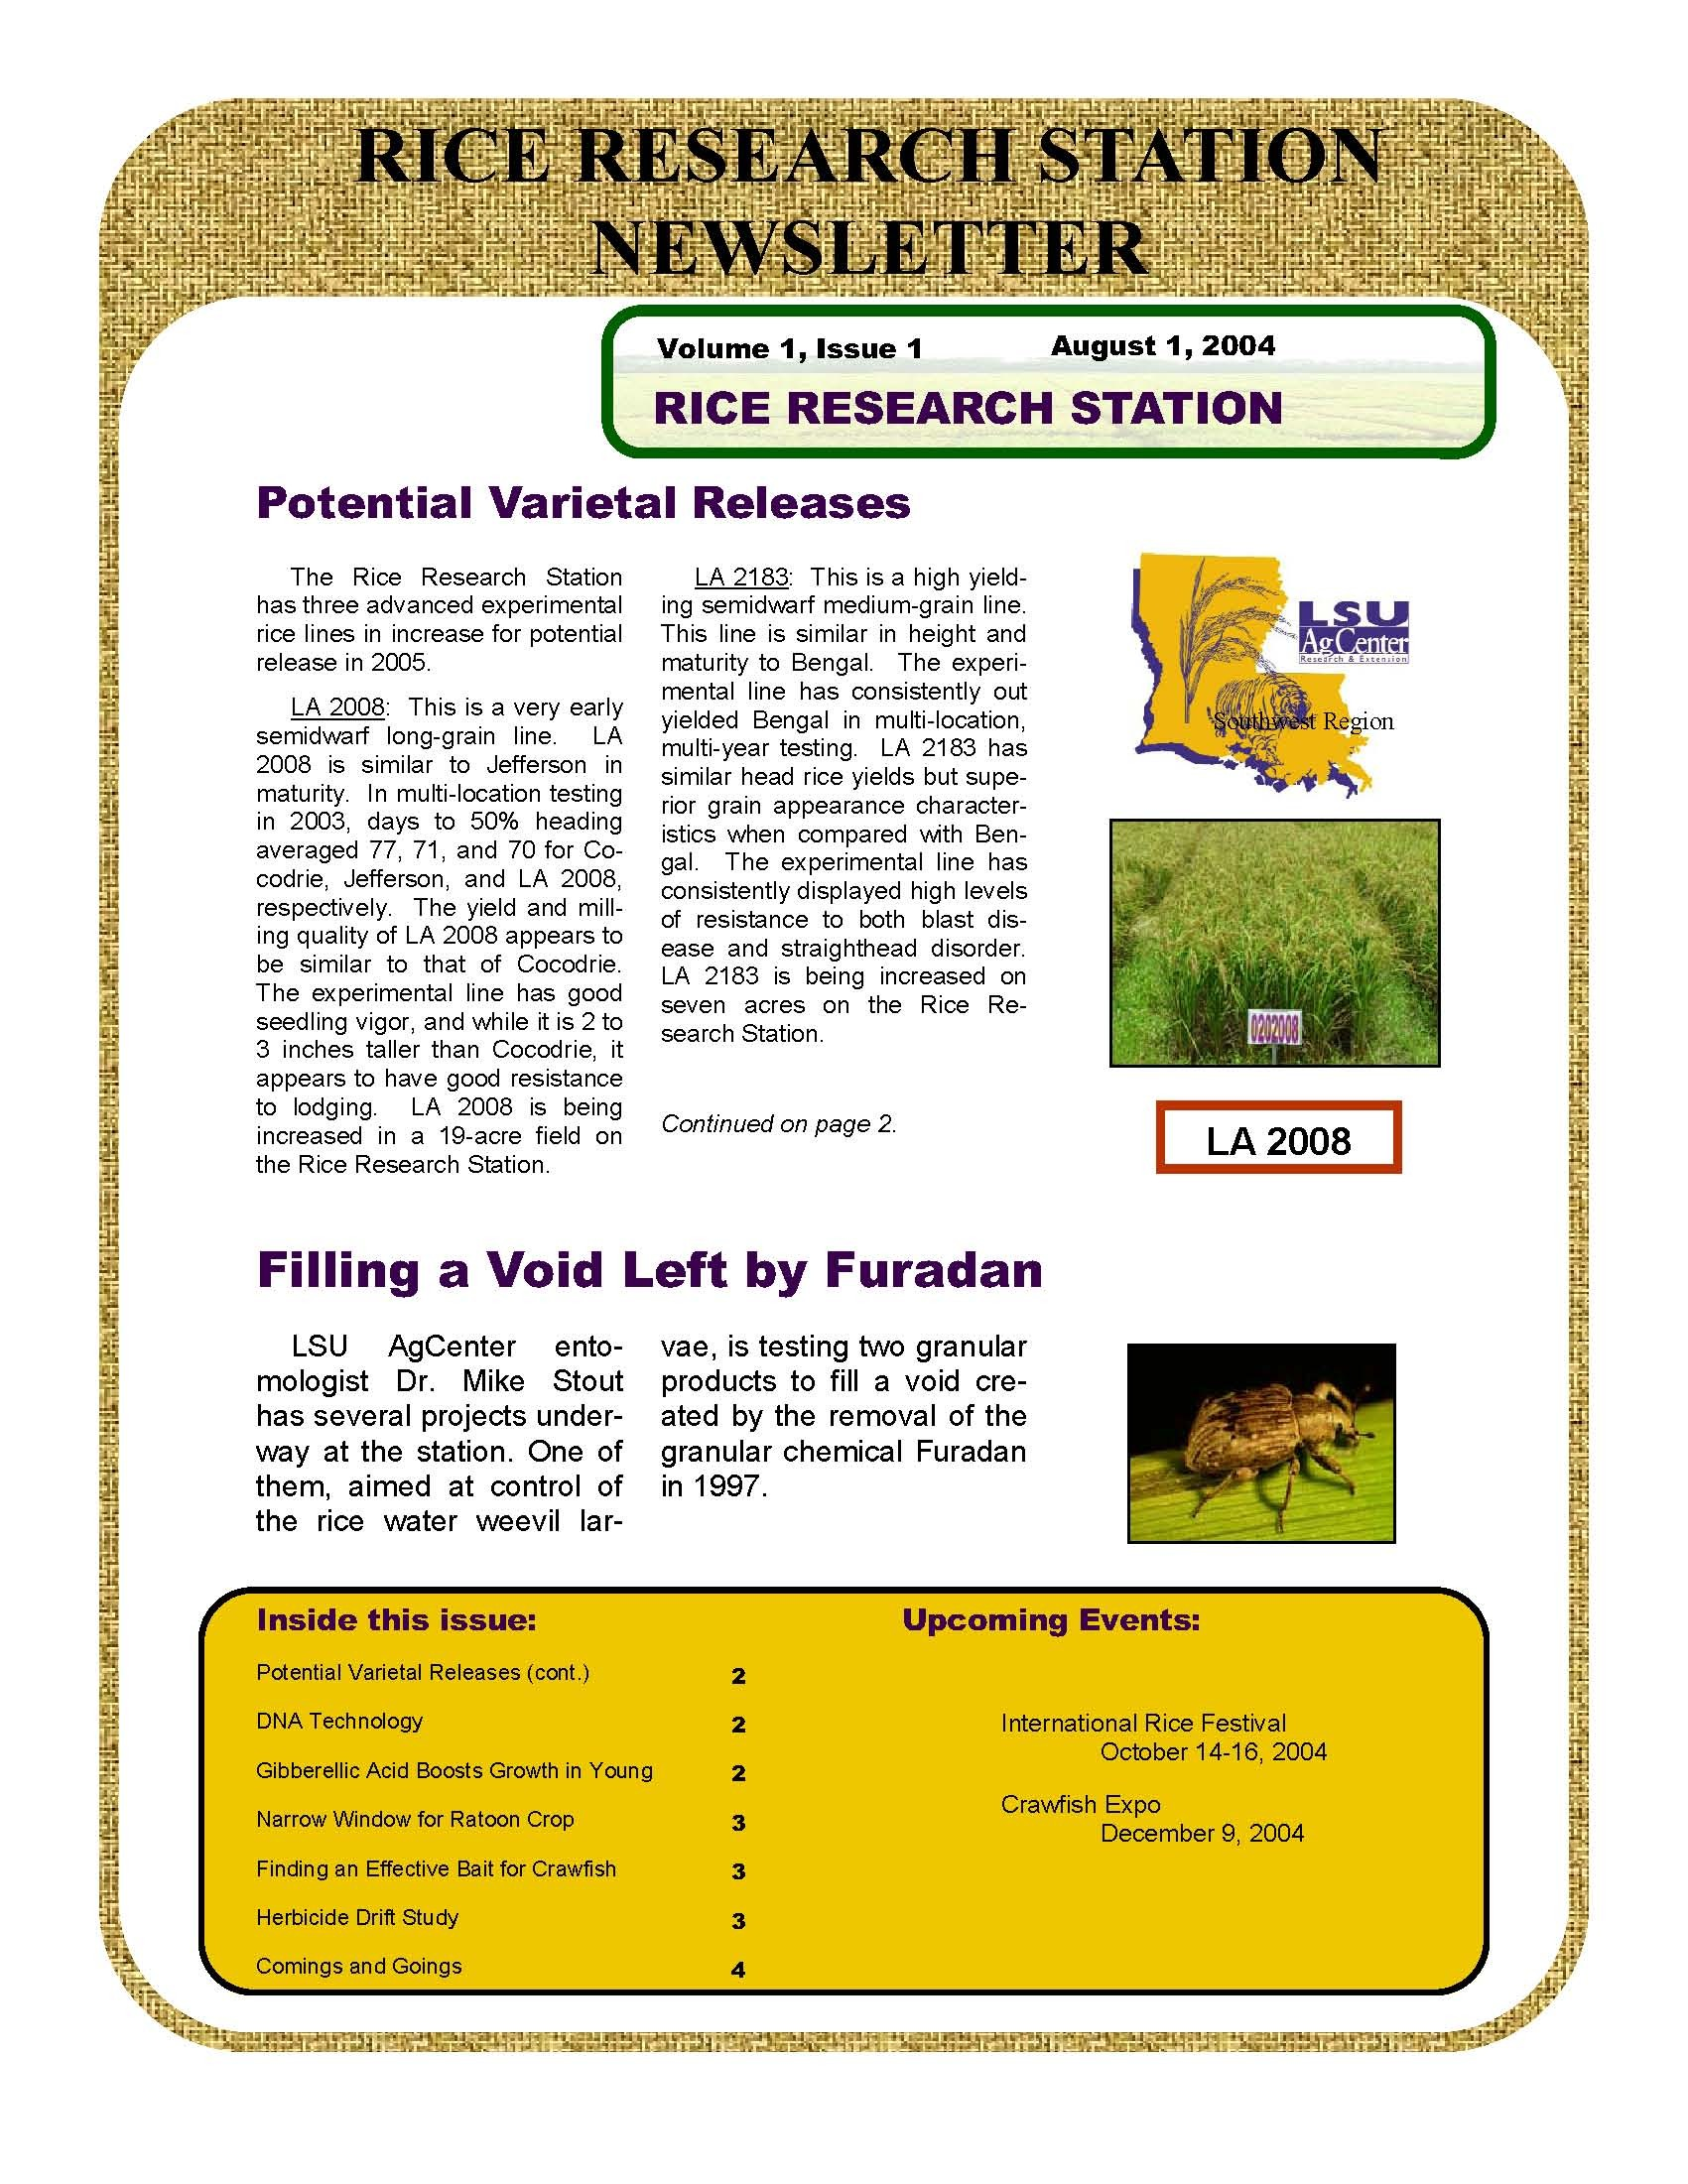 2004 Rice Research Station Newsletters